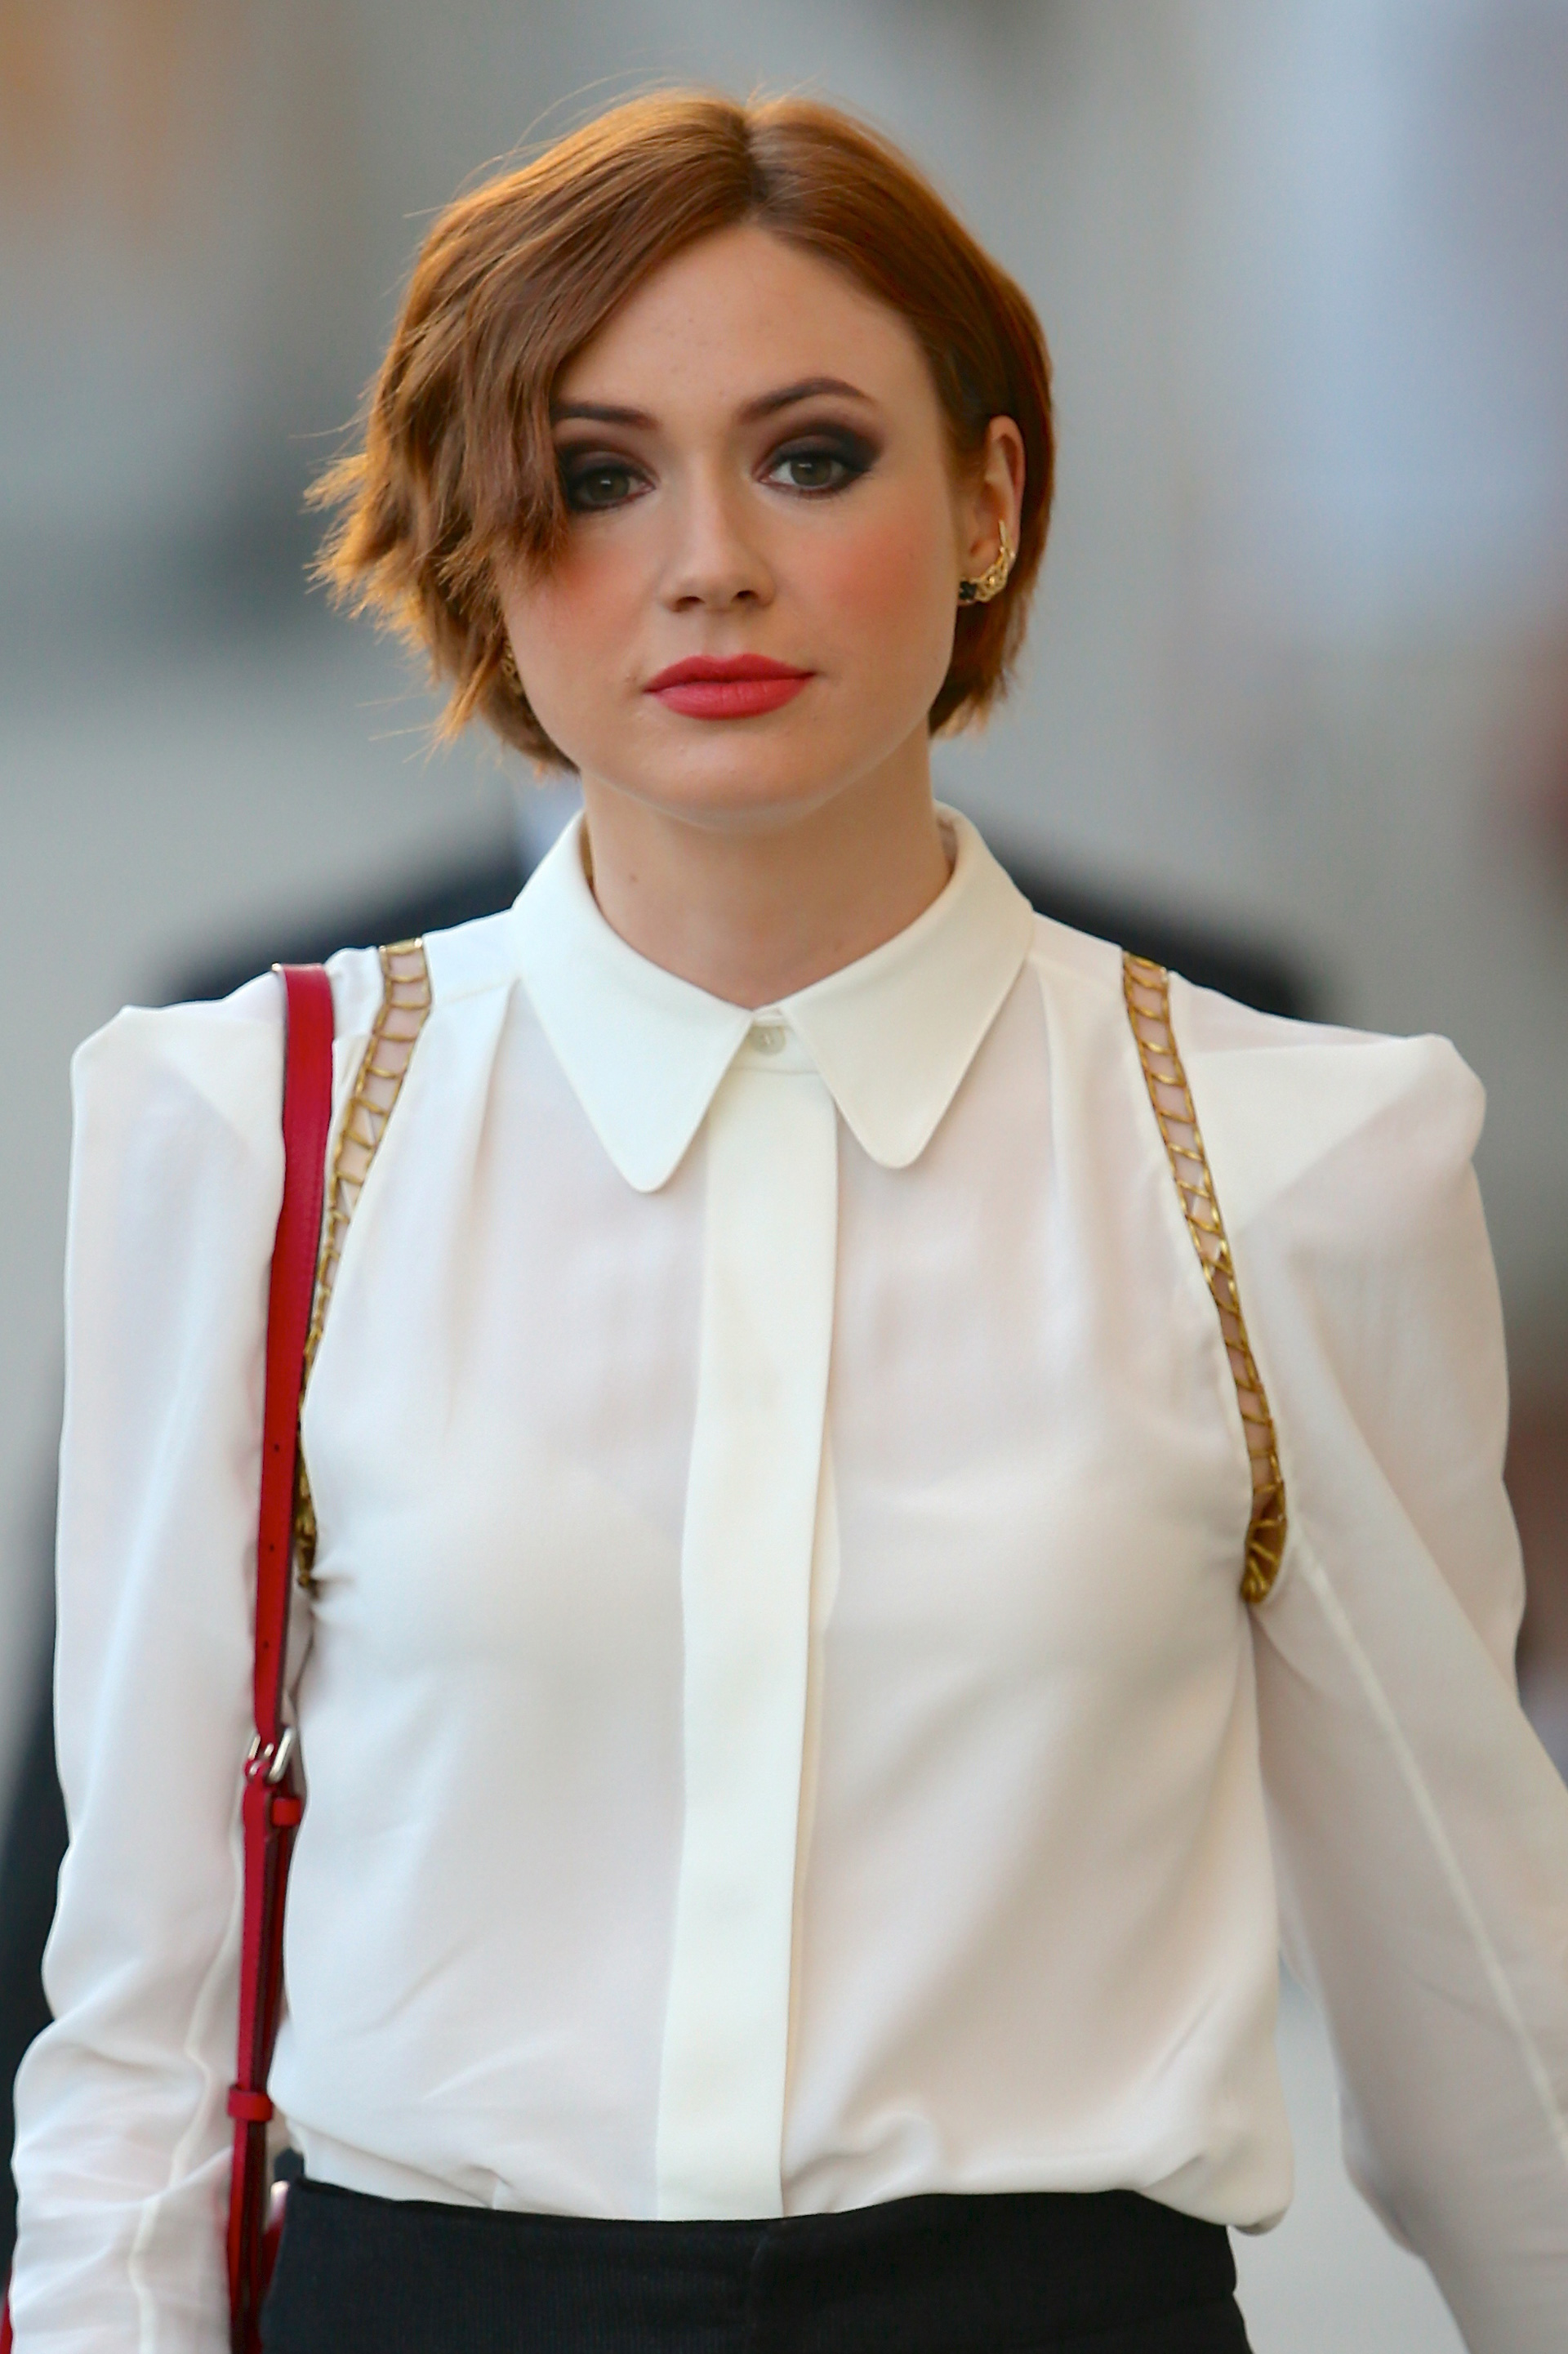 Best short hair: Karen Gillan